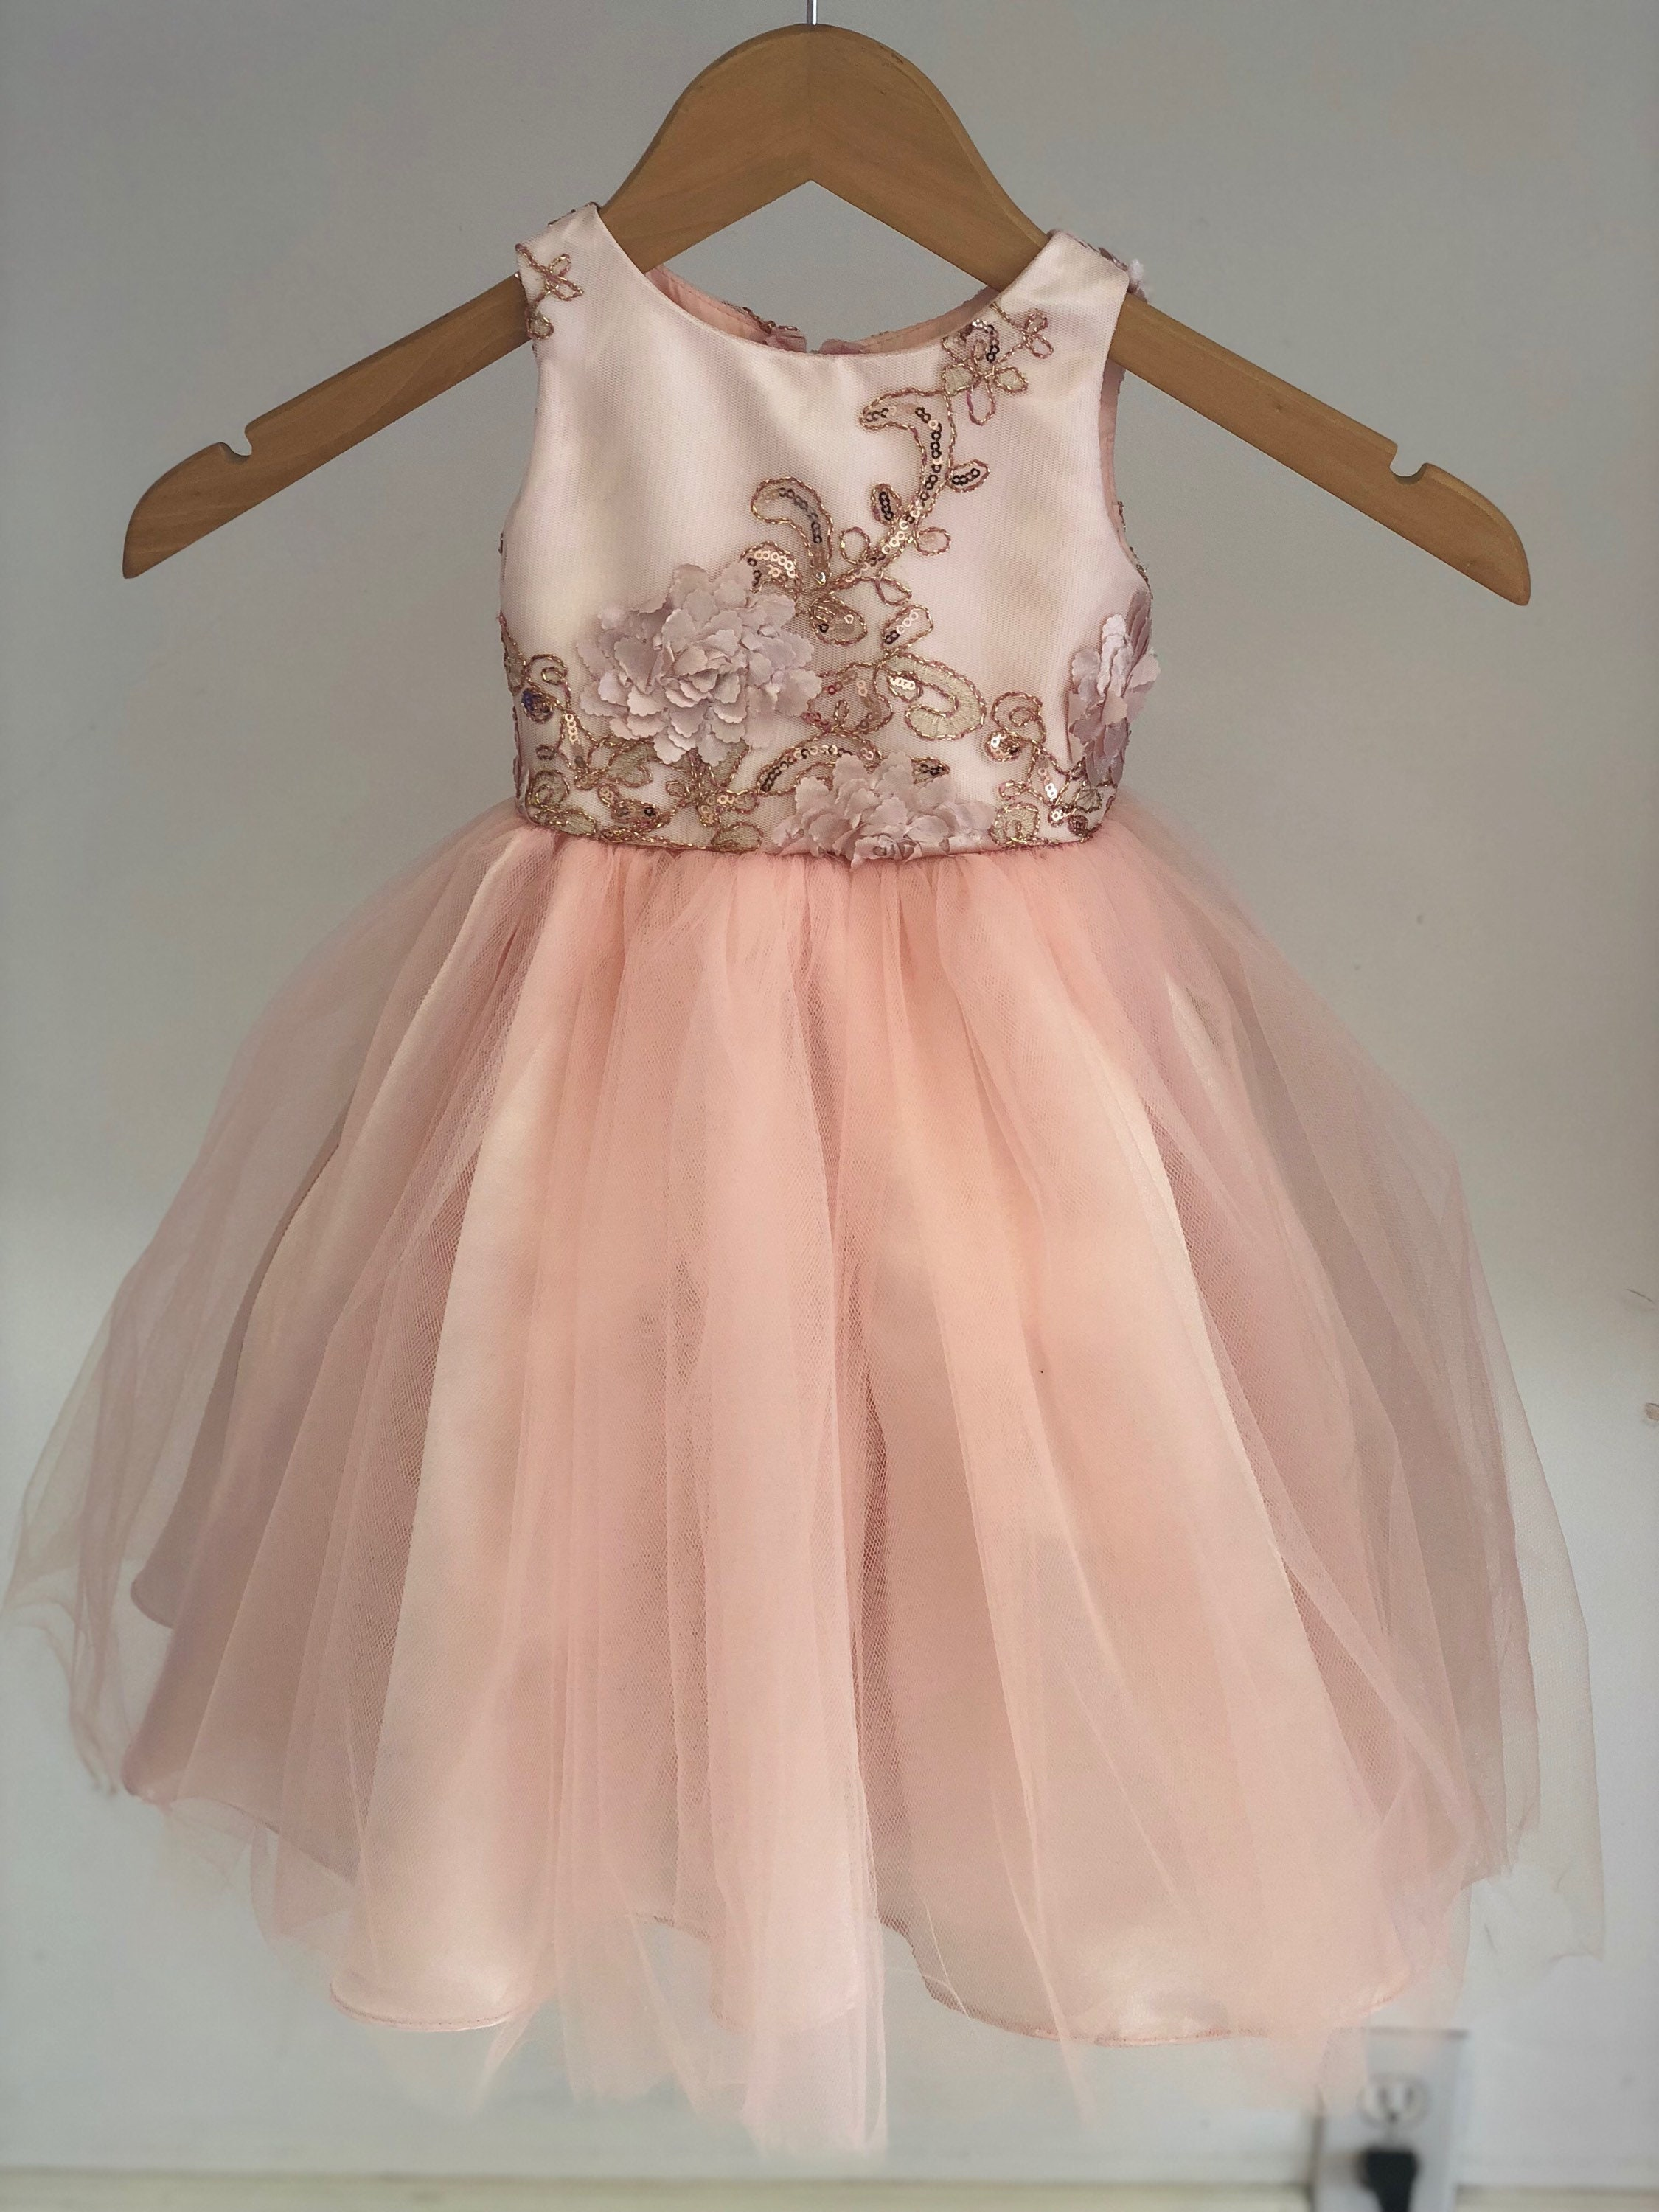 Rosemary Dress Lace Sequin Blush Pink Flower Girl Dress Tulle Etsy